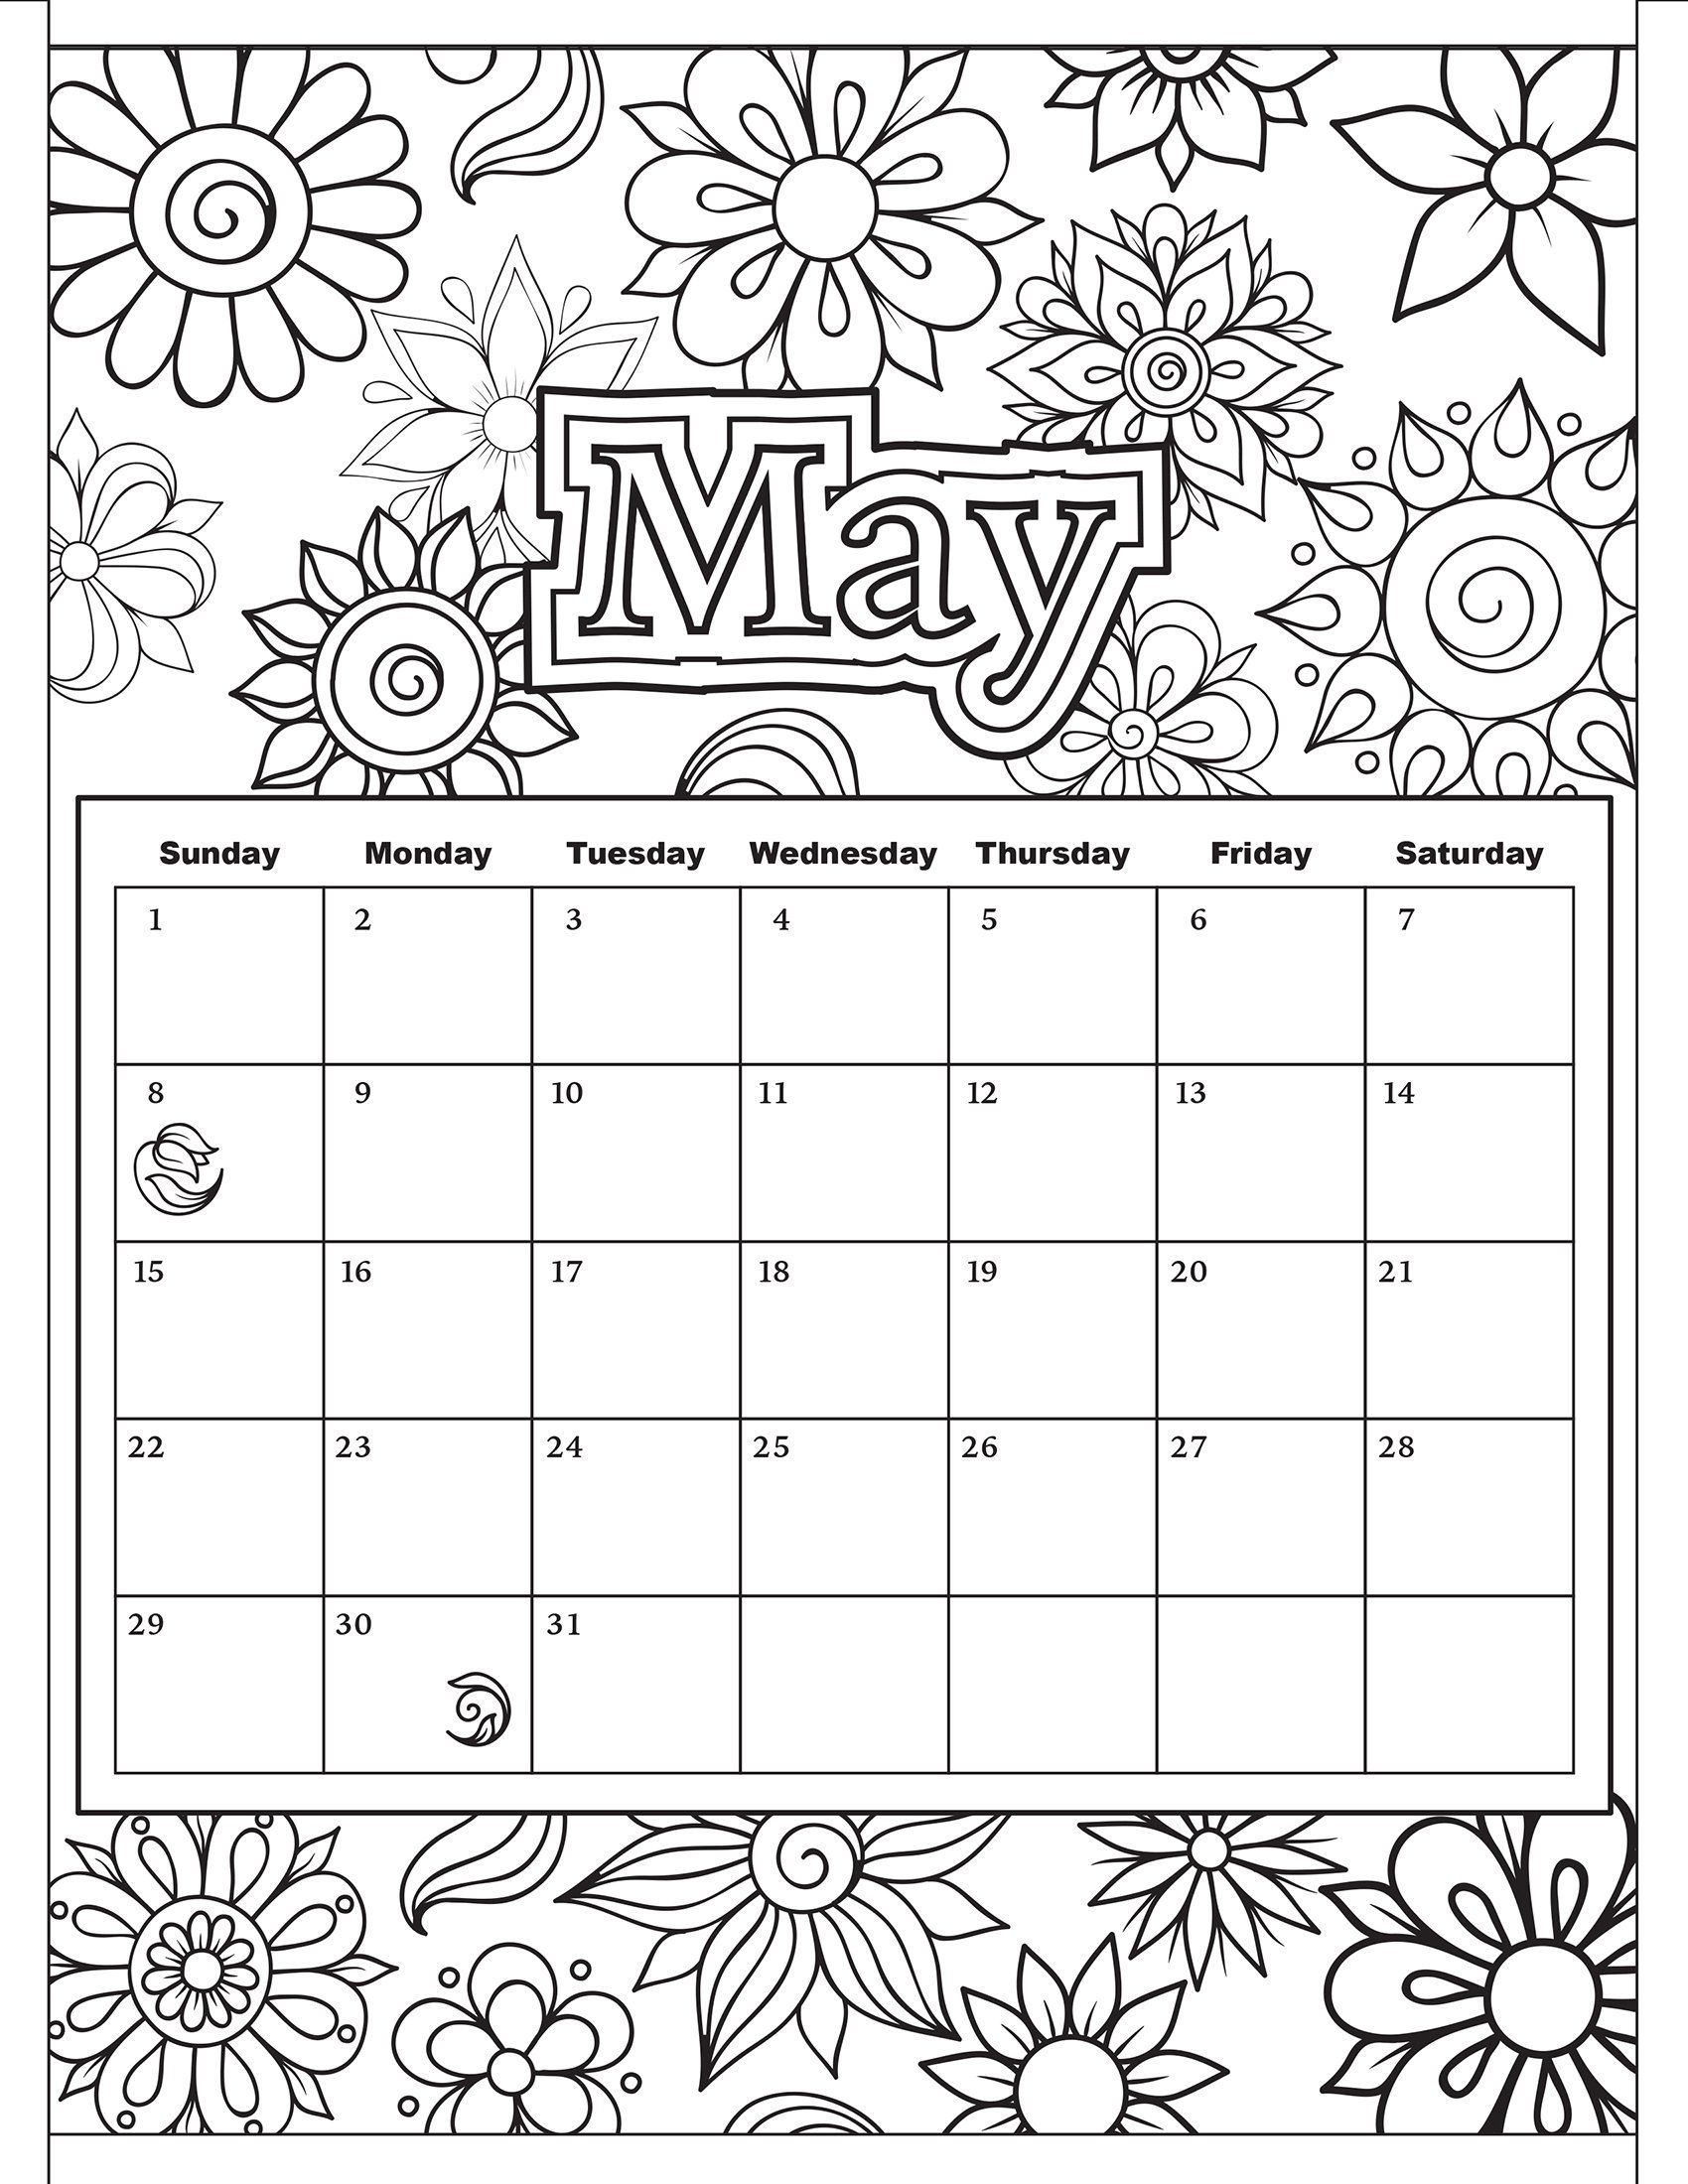 Free Download: Coloring Pages From Popular Adult Coloring Books